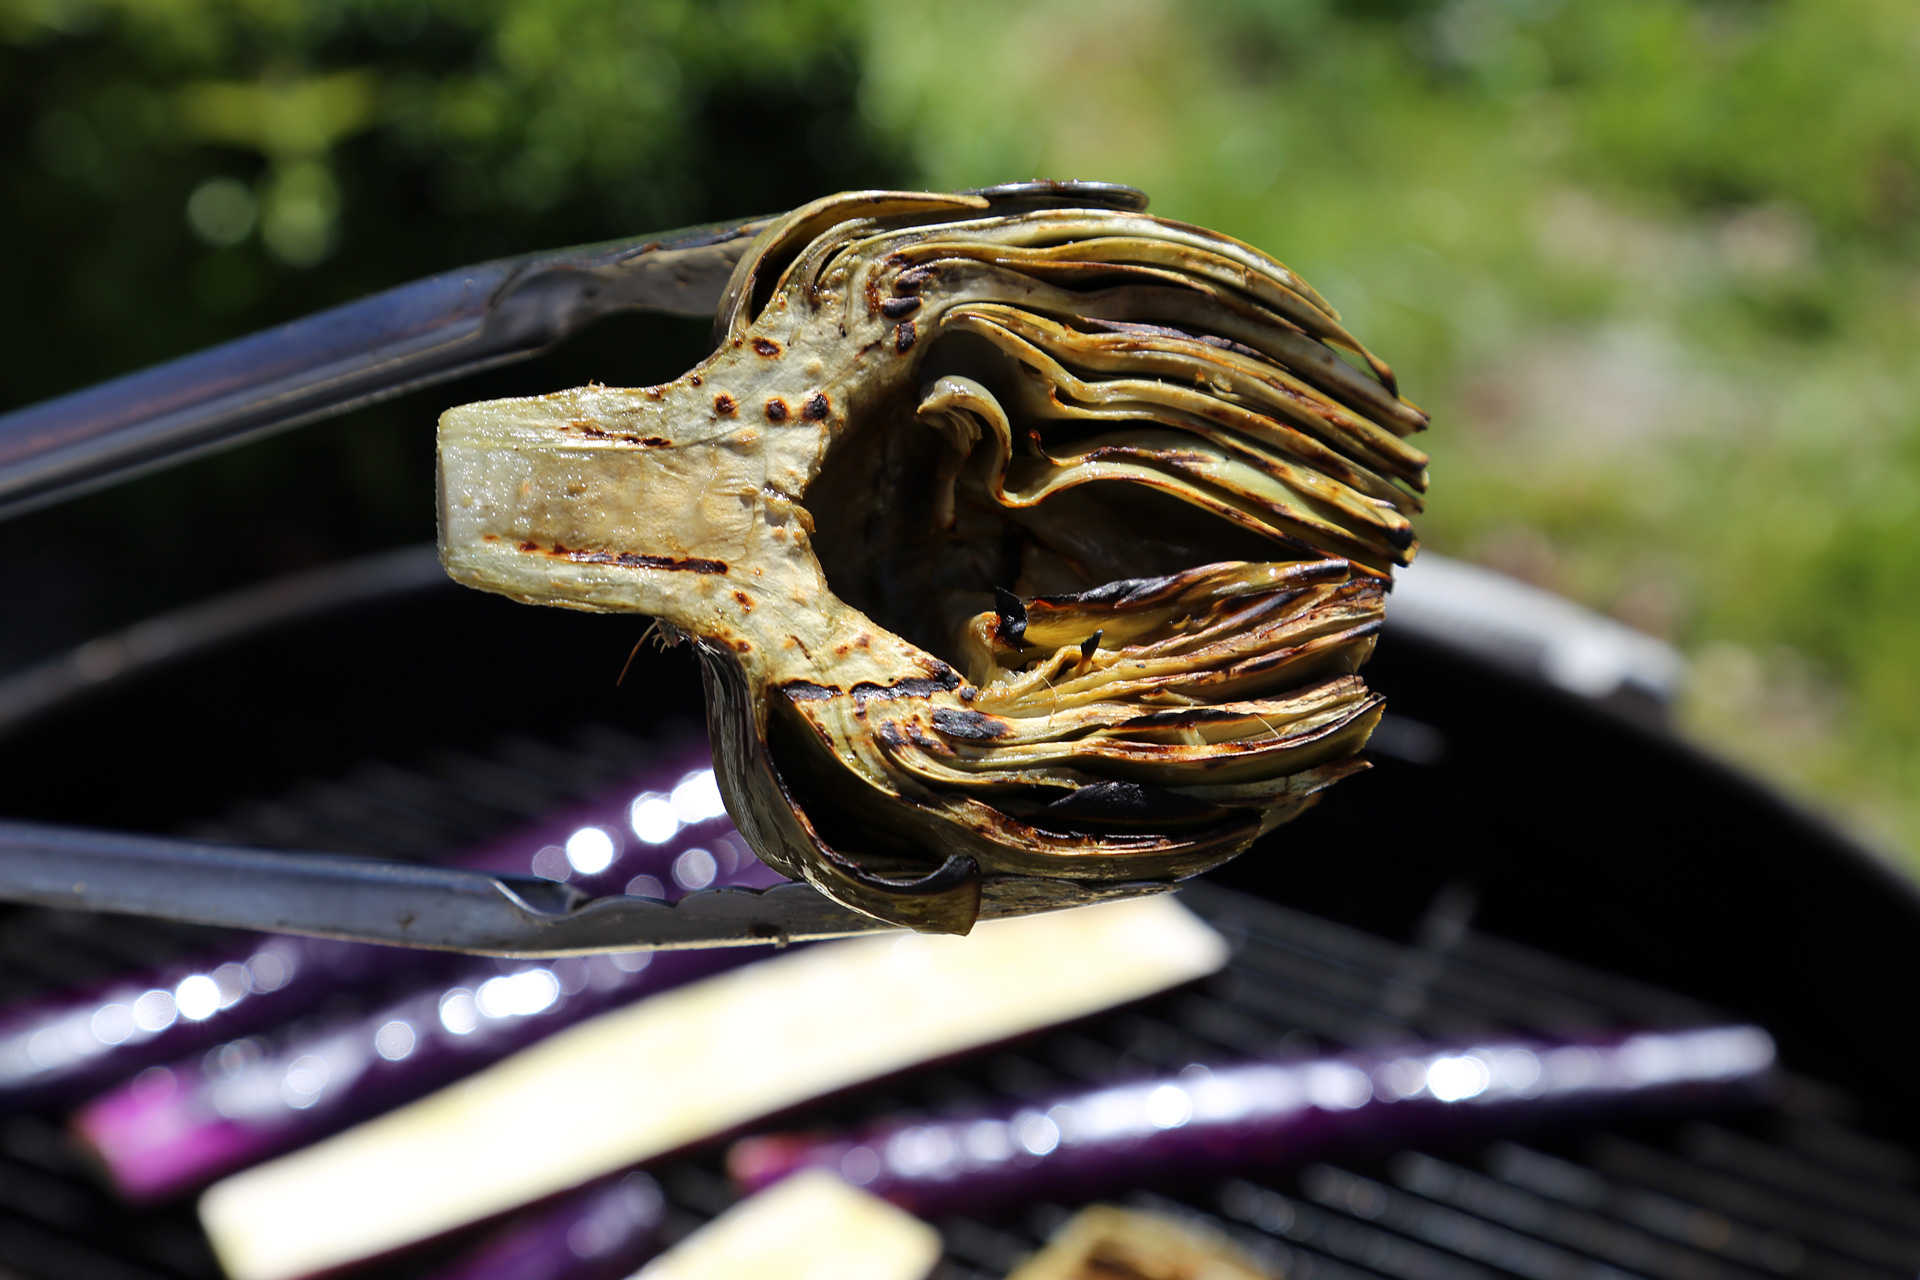 Cook until the artichokes are nicely grill-marked and tender.